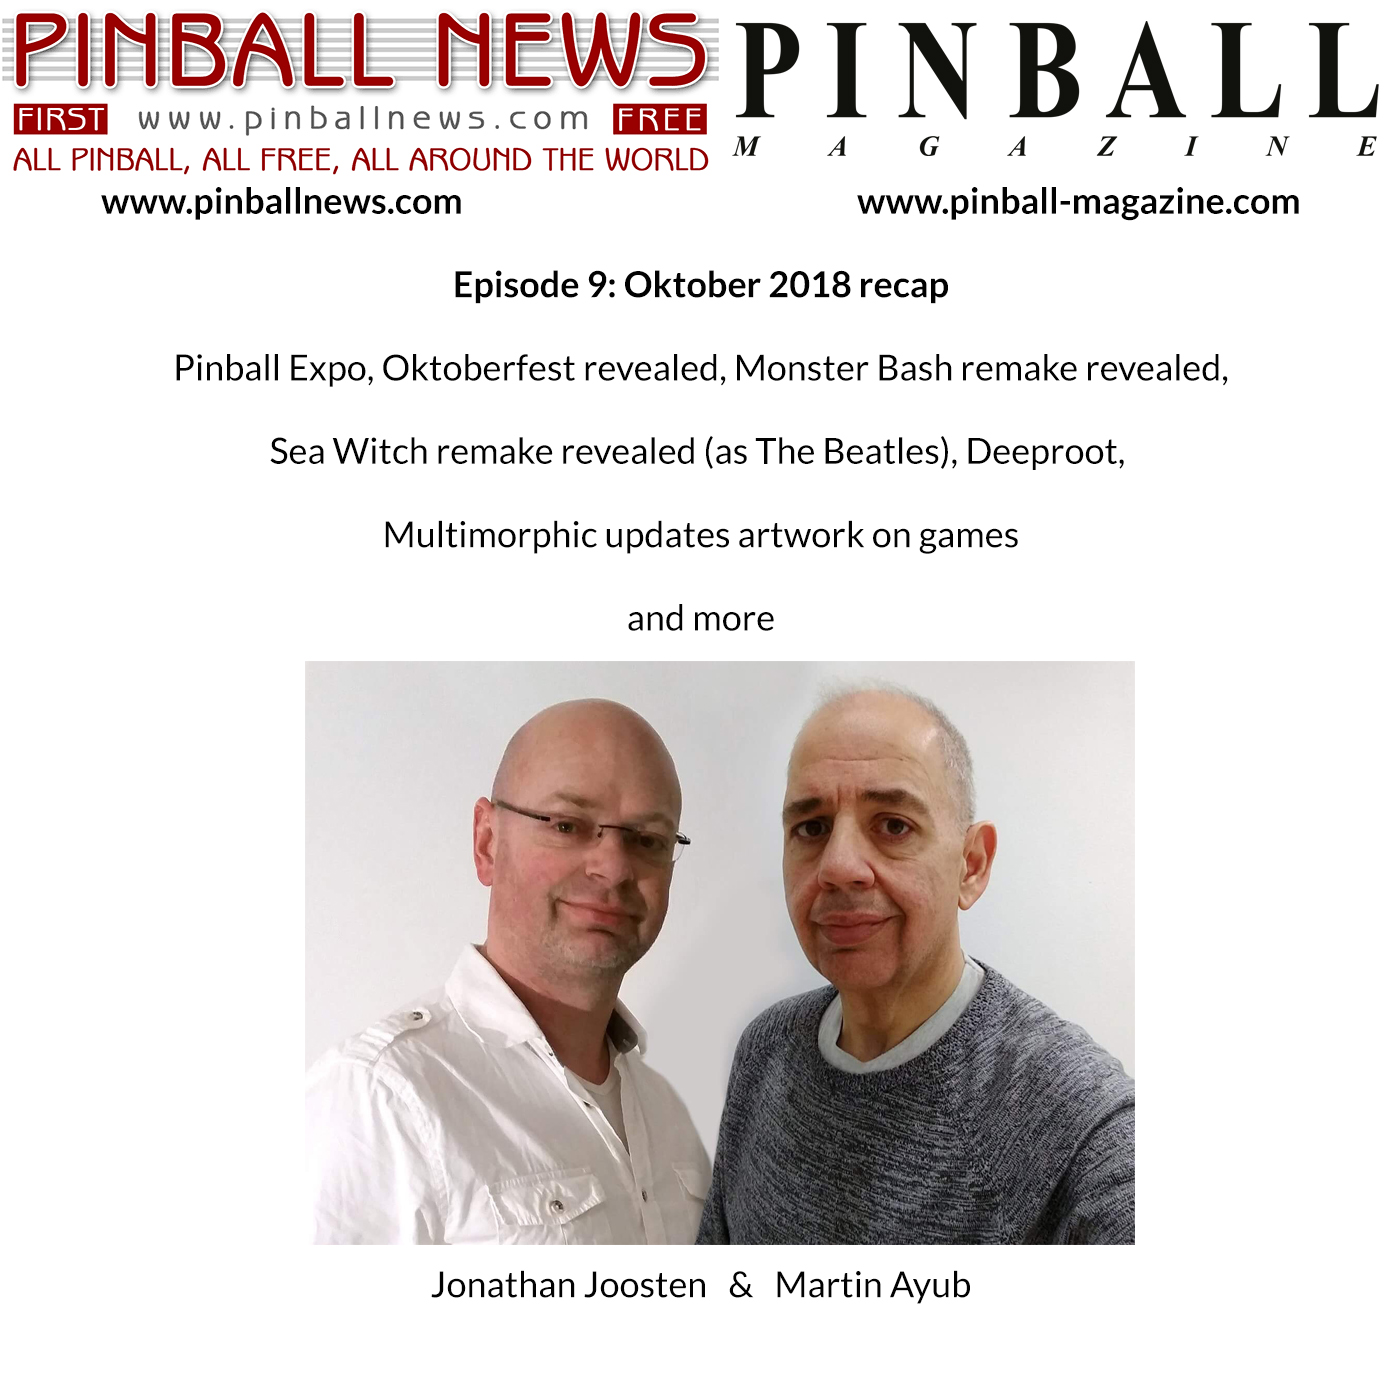 Pinball News Magazine – Oktober Stories and Stern Beatles